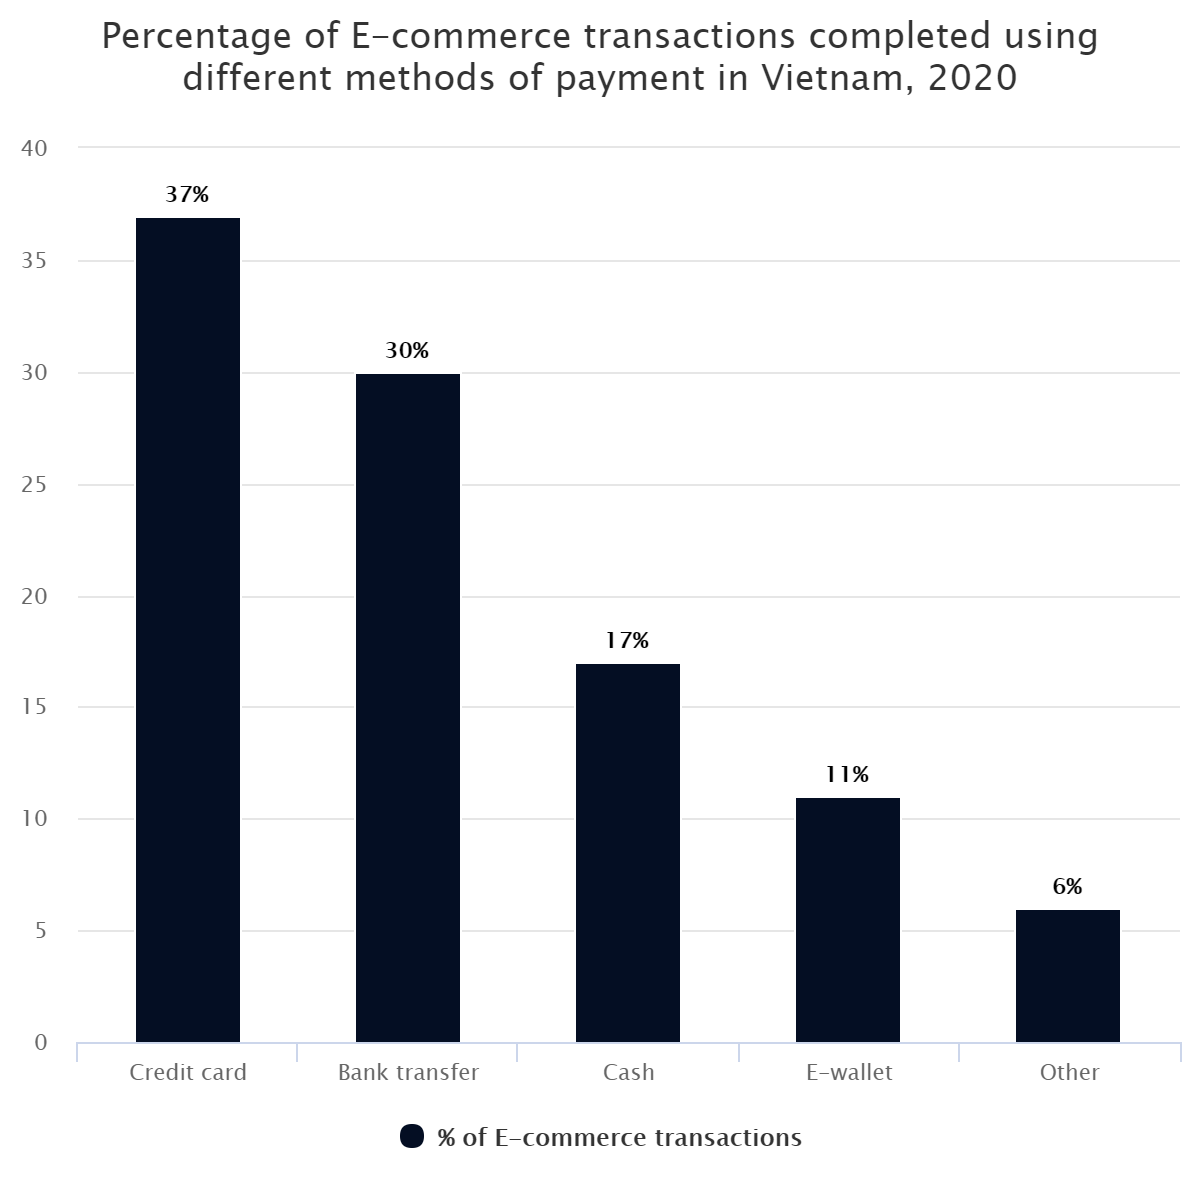 Percentage of E-commerce transactions completed using different methods of payment in Vietnam, 2020